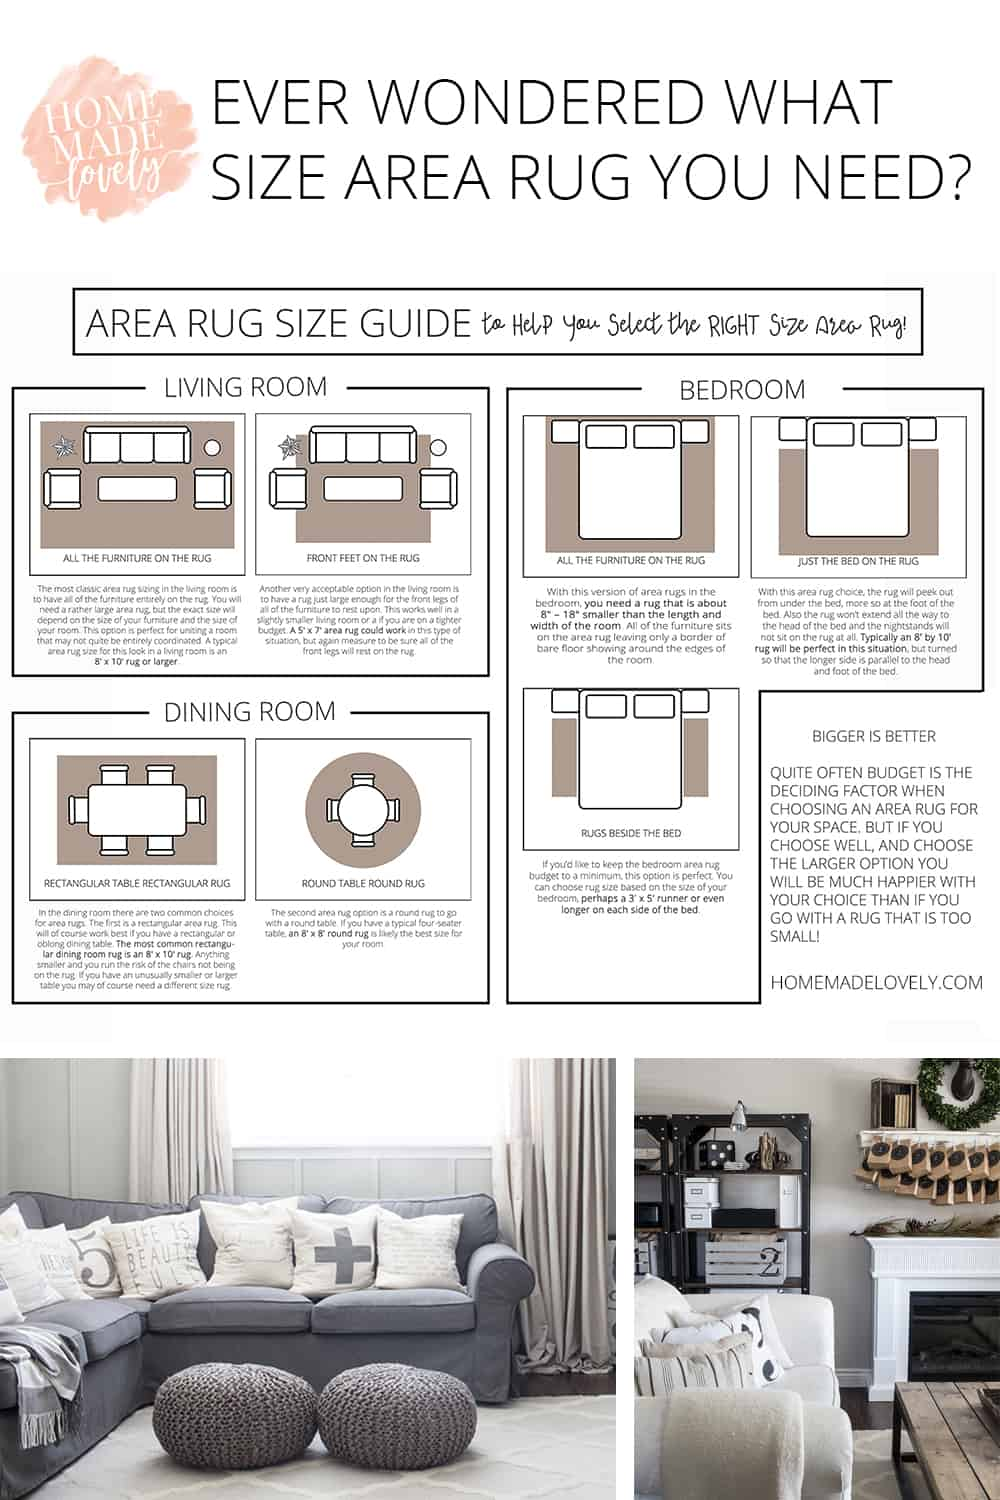 Area Rug Size Guide To Help You Select